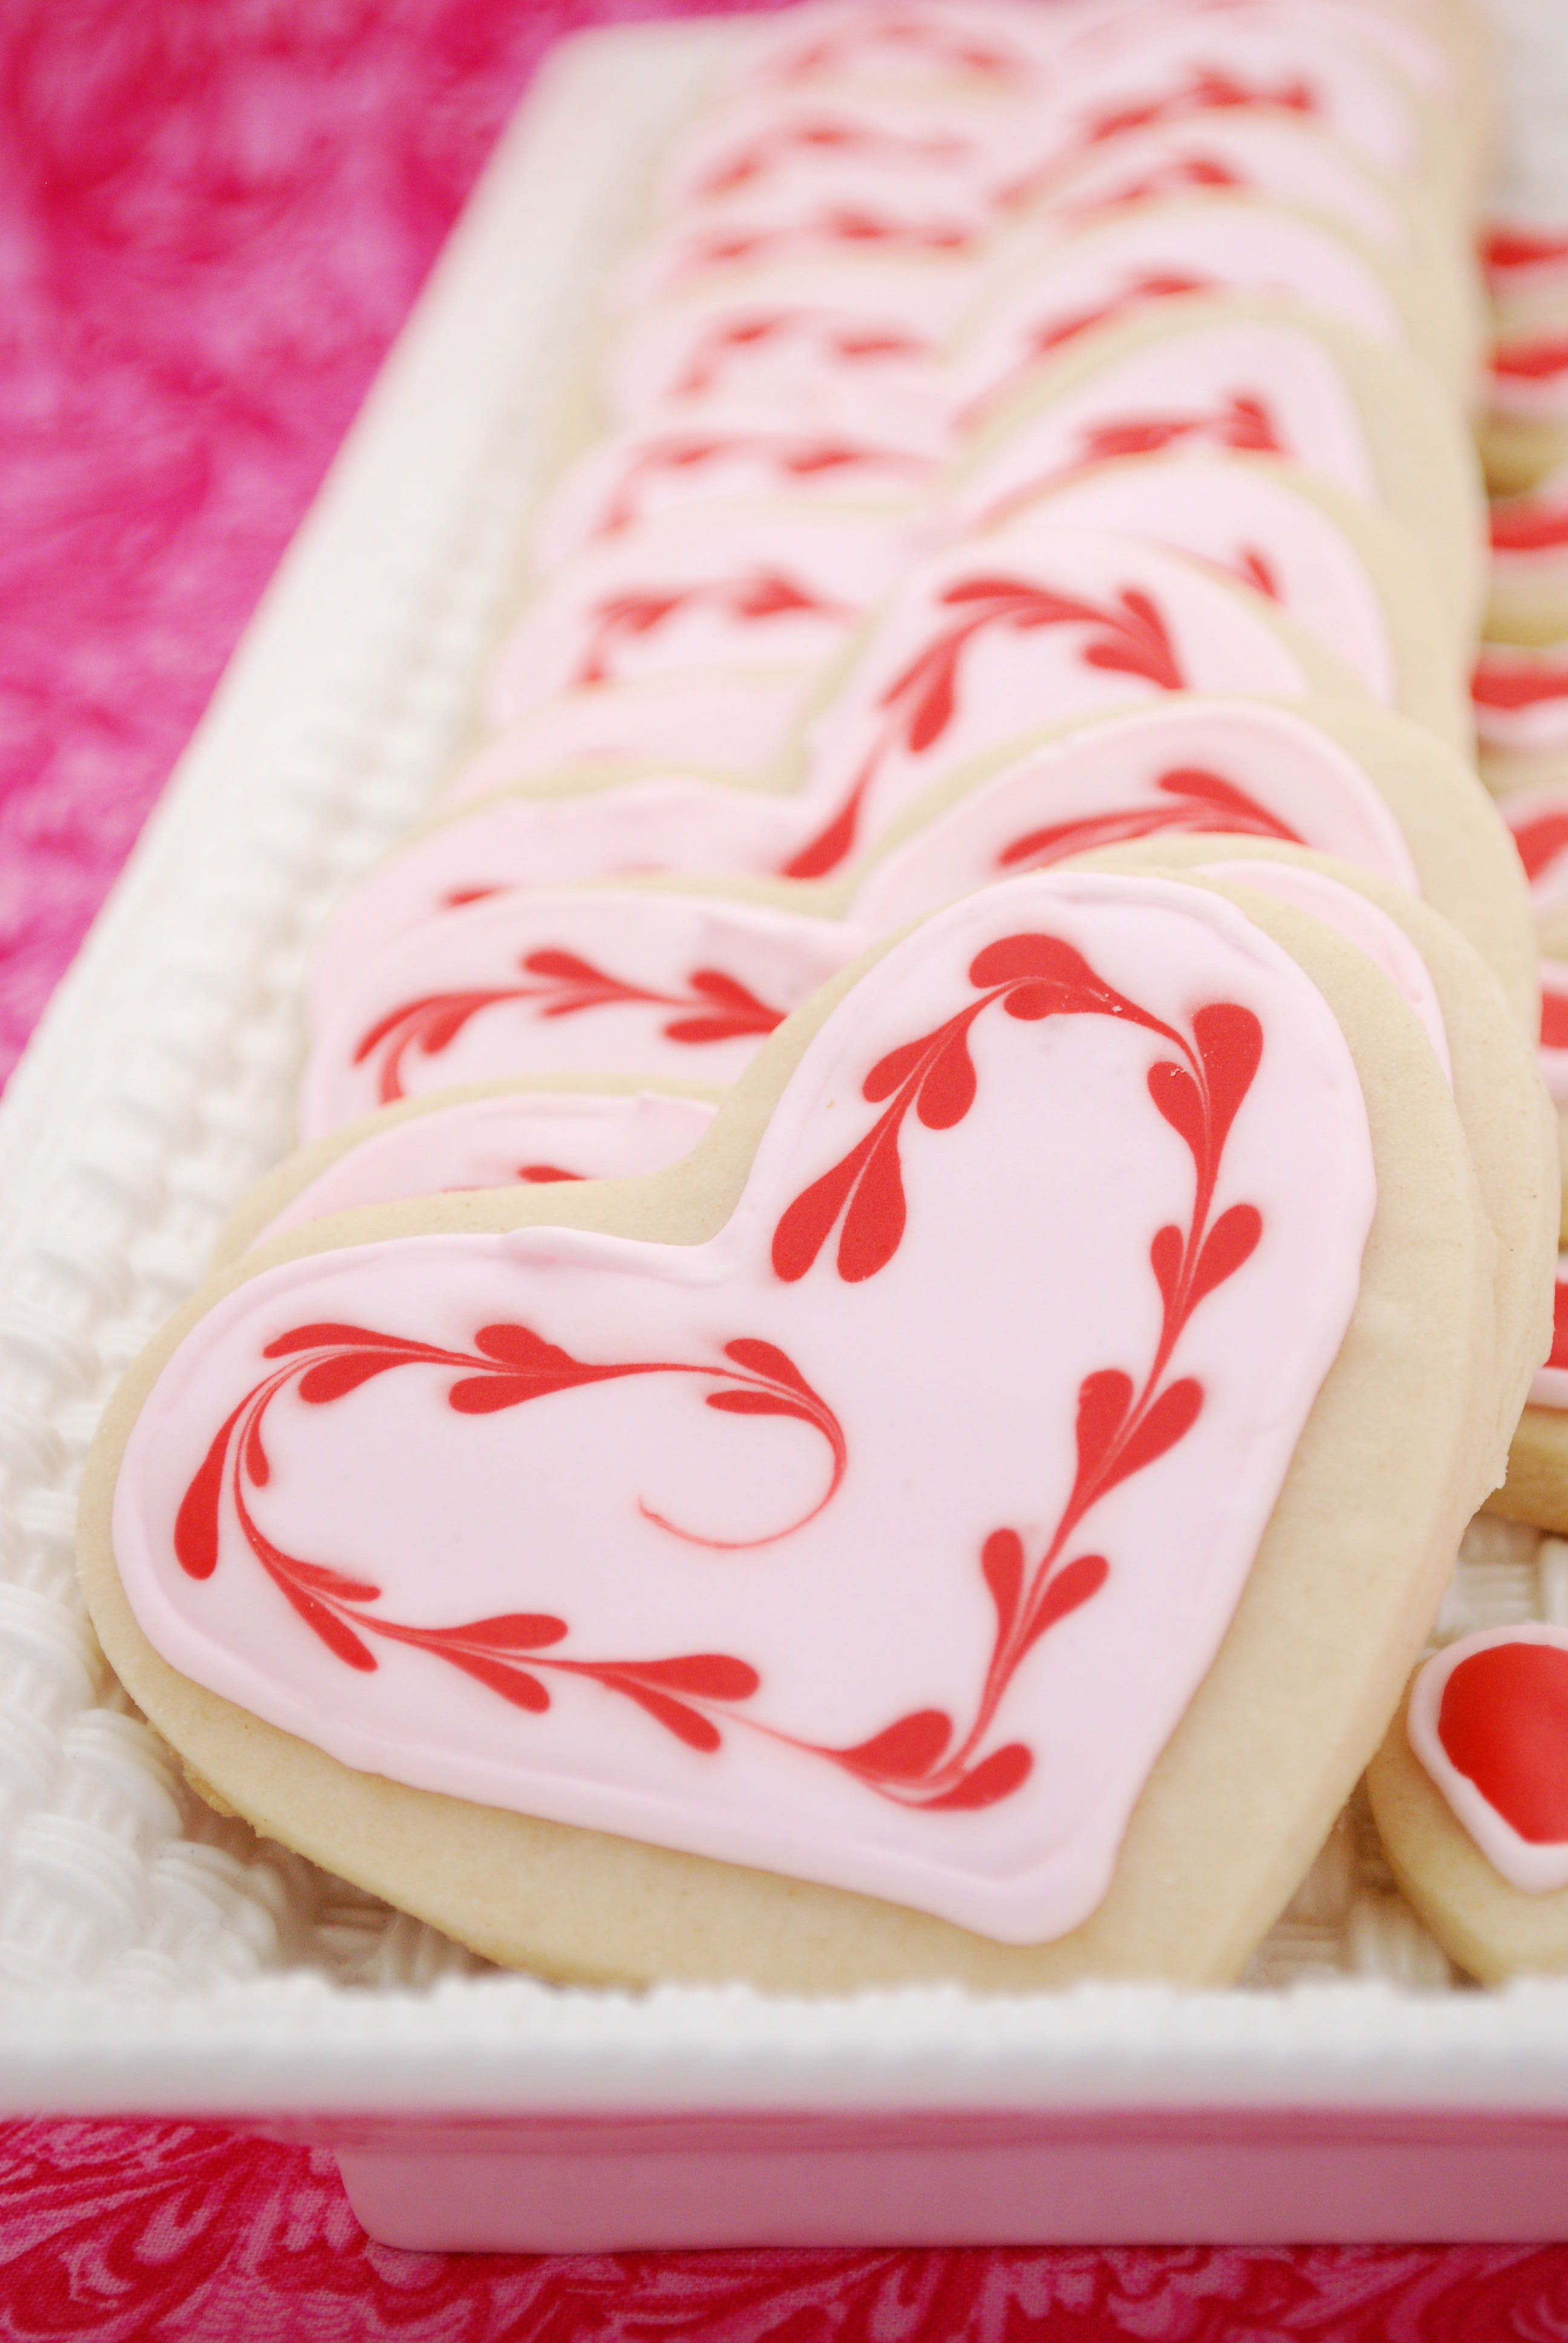 Como Decorar Galletas De Corazon Valentine Sugar Cookies Galletas De Azúcar Decoradas Pinterest